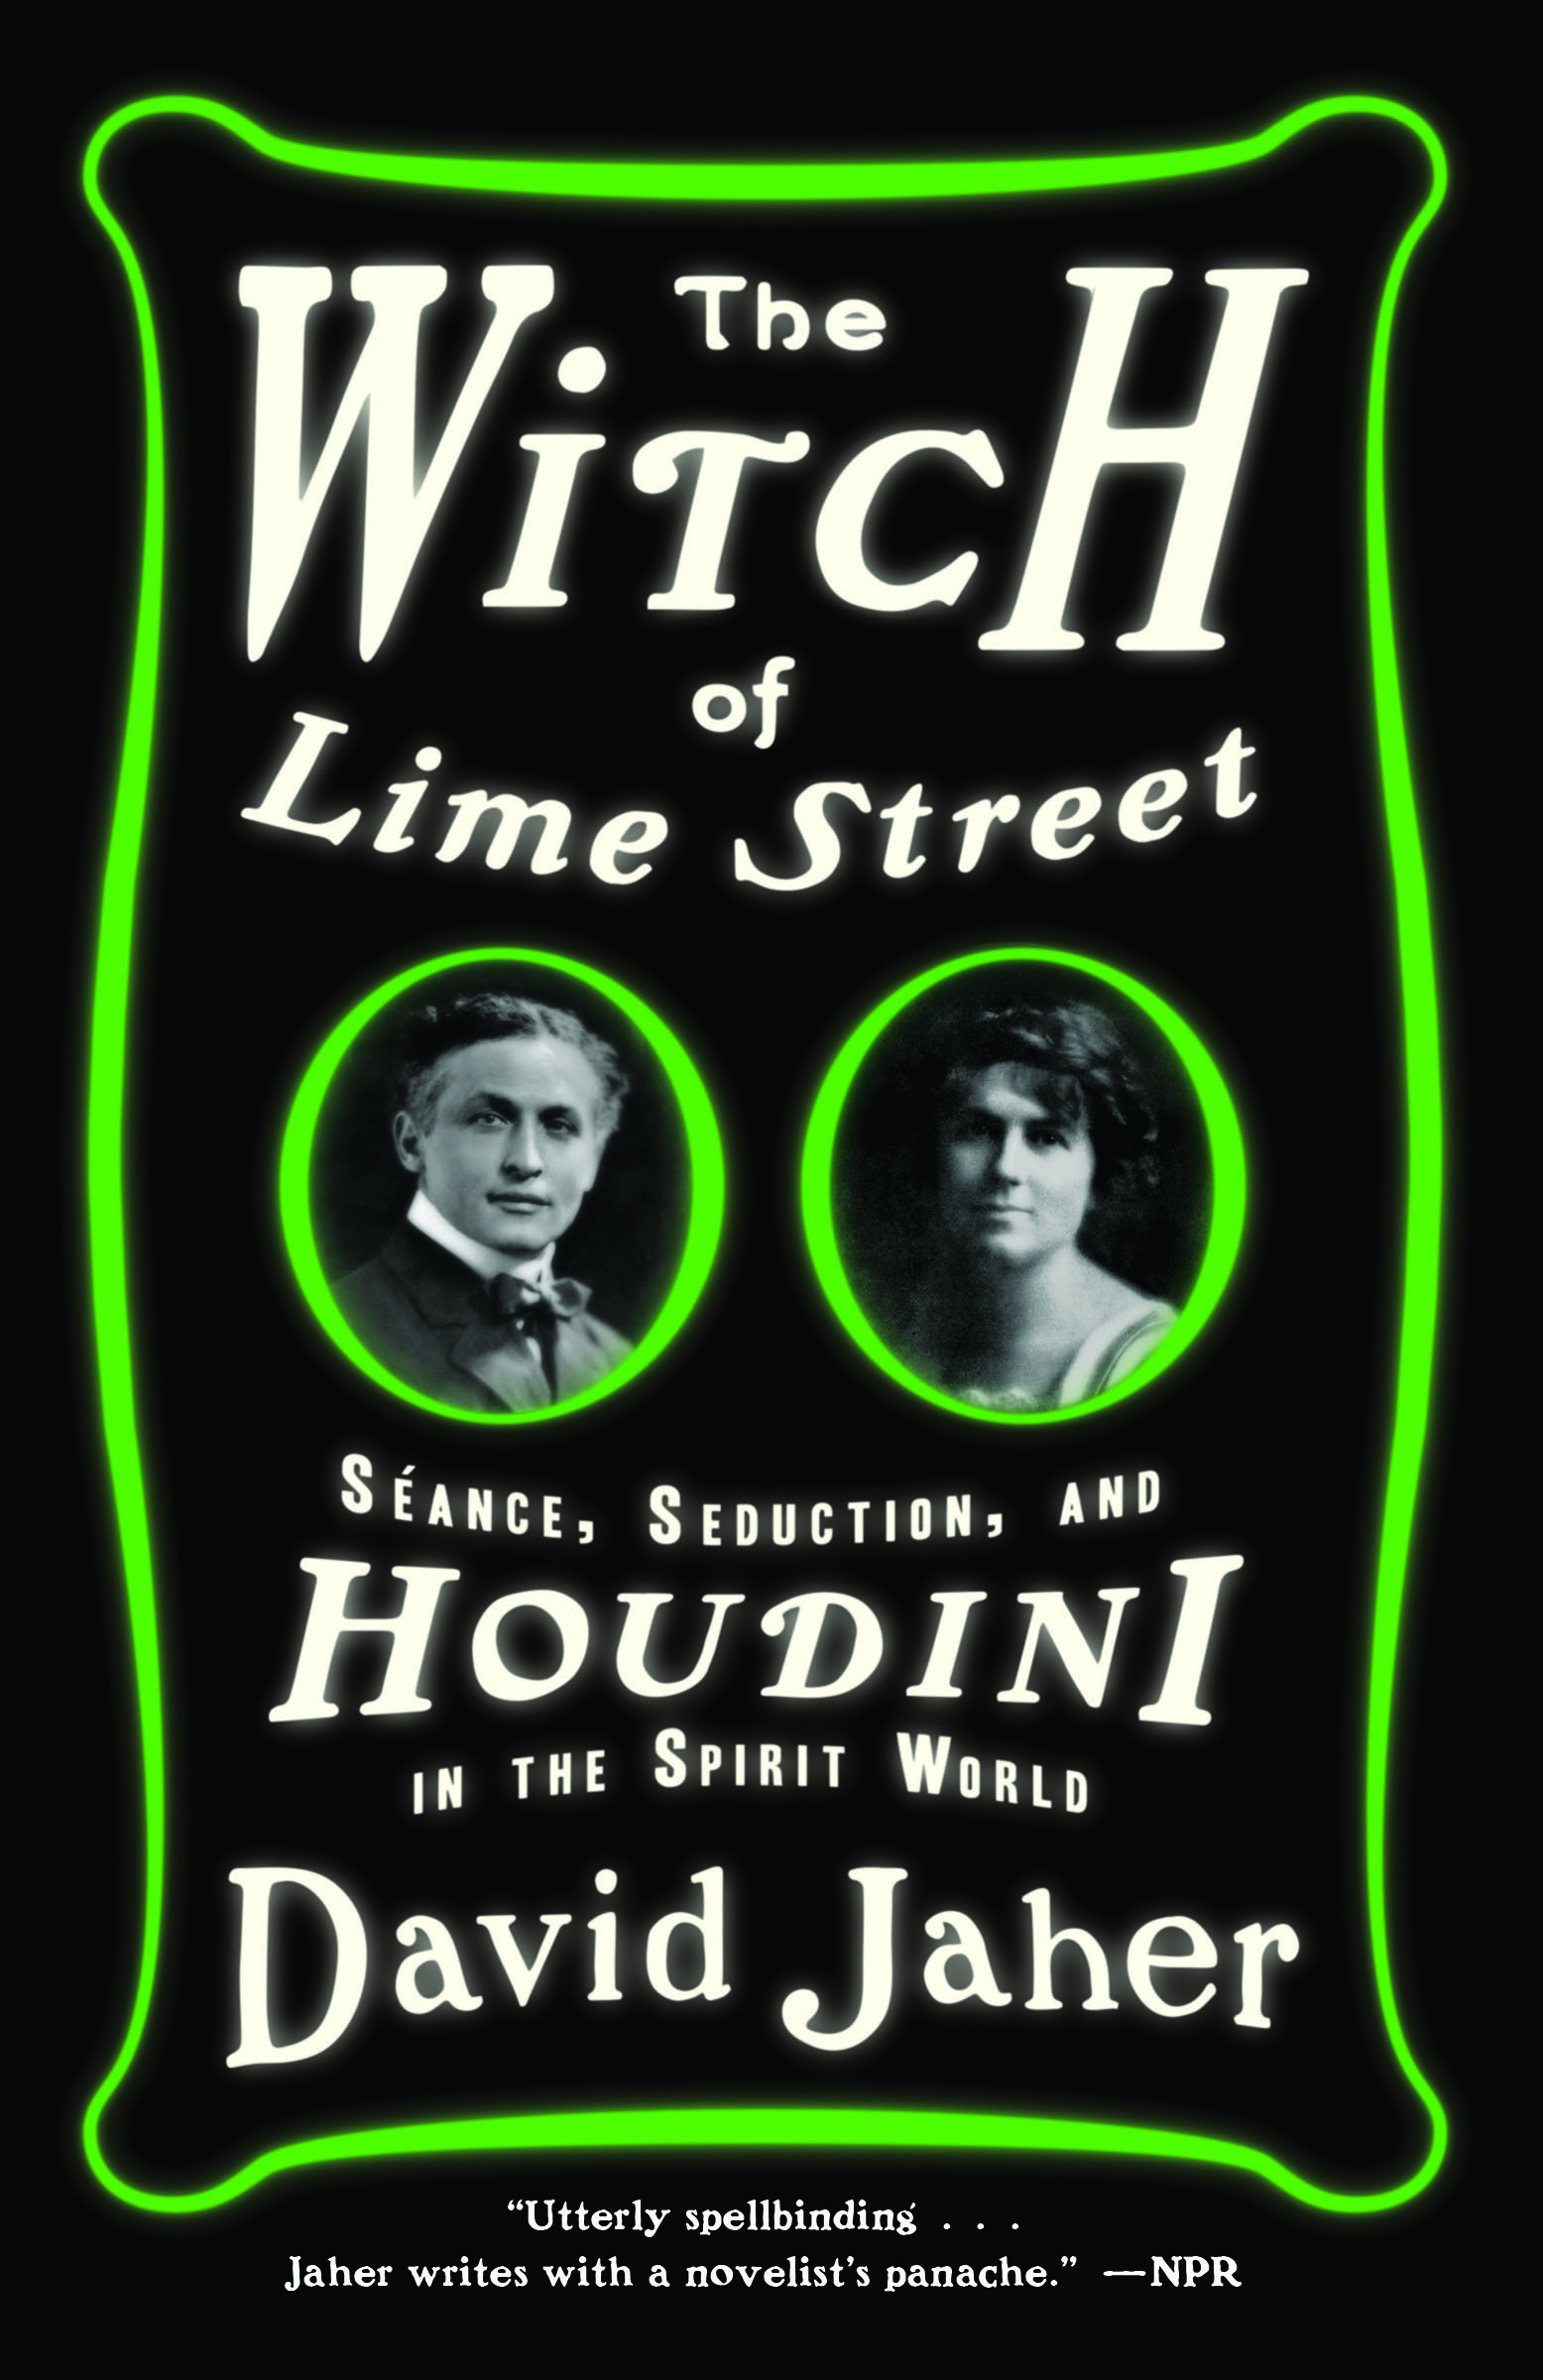 The-Witch-of-Lime-Street.jpg